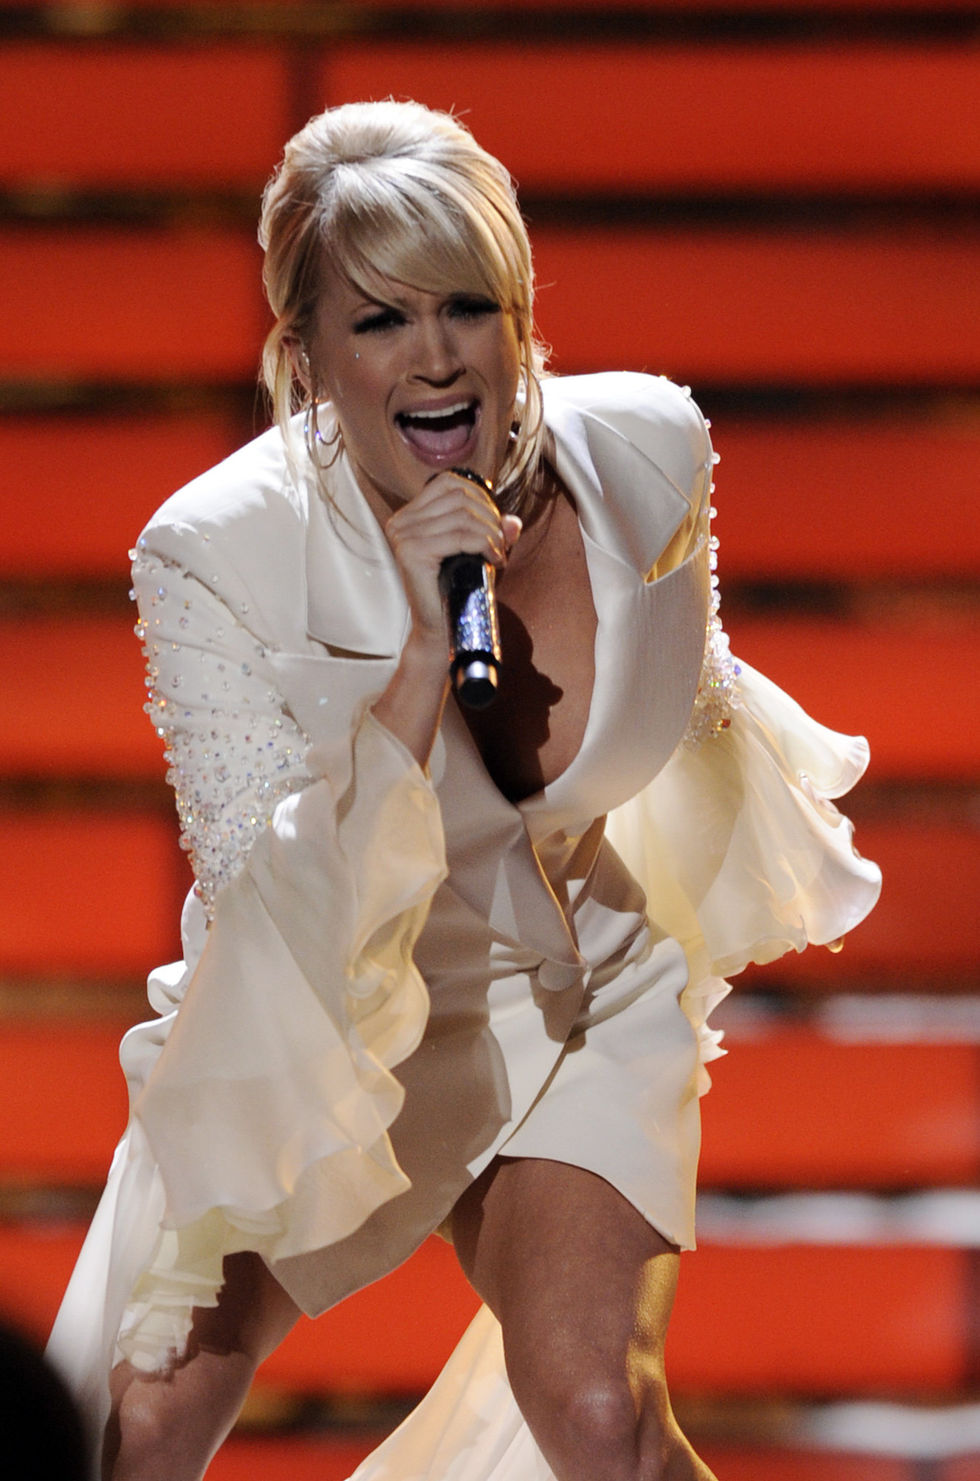 carrie-underwood-american-idol-grand-finale-2008-01